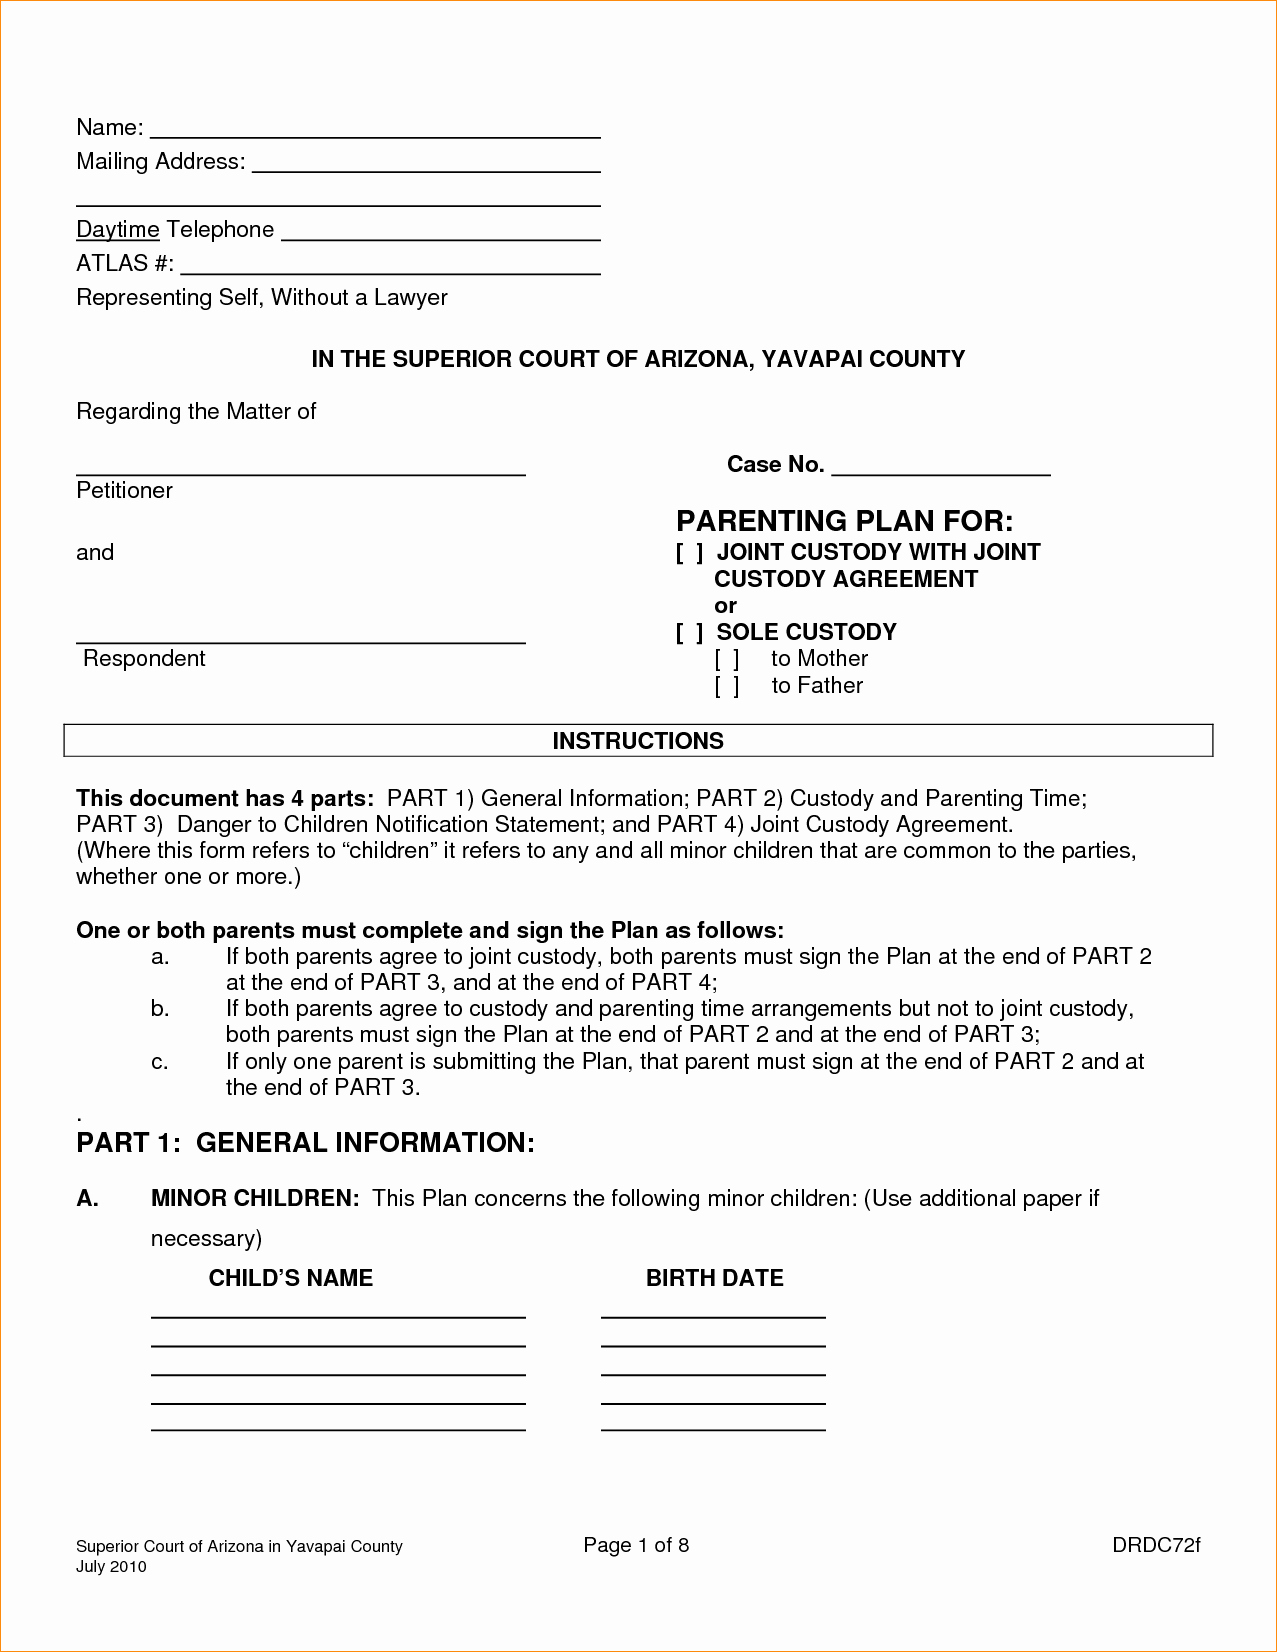 Agreement Joint Custody Agreement form